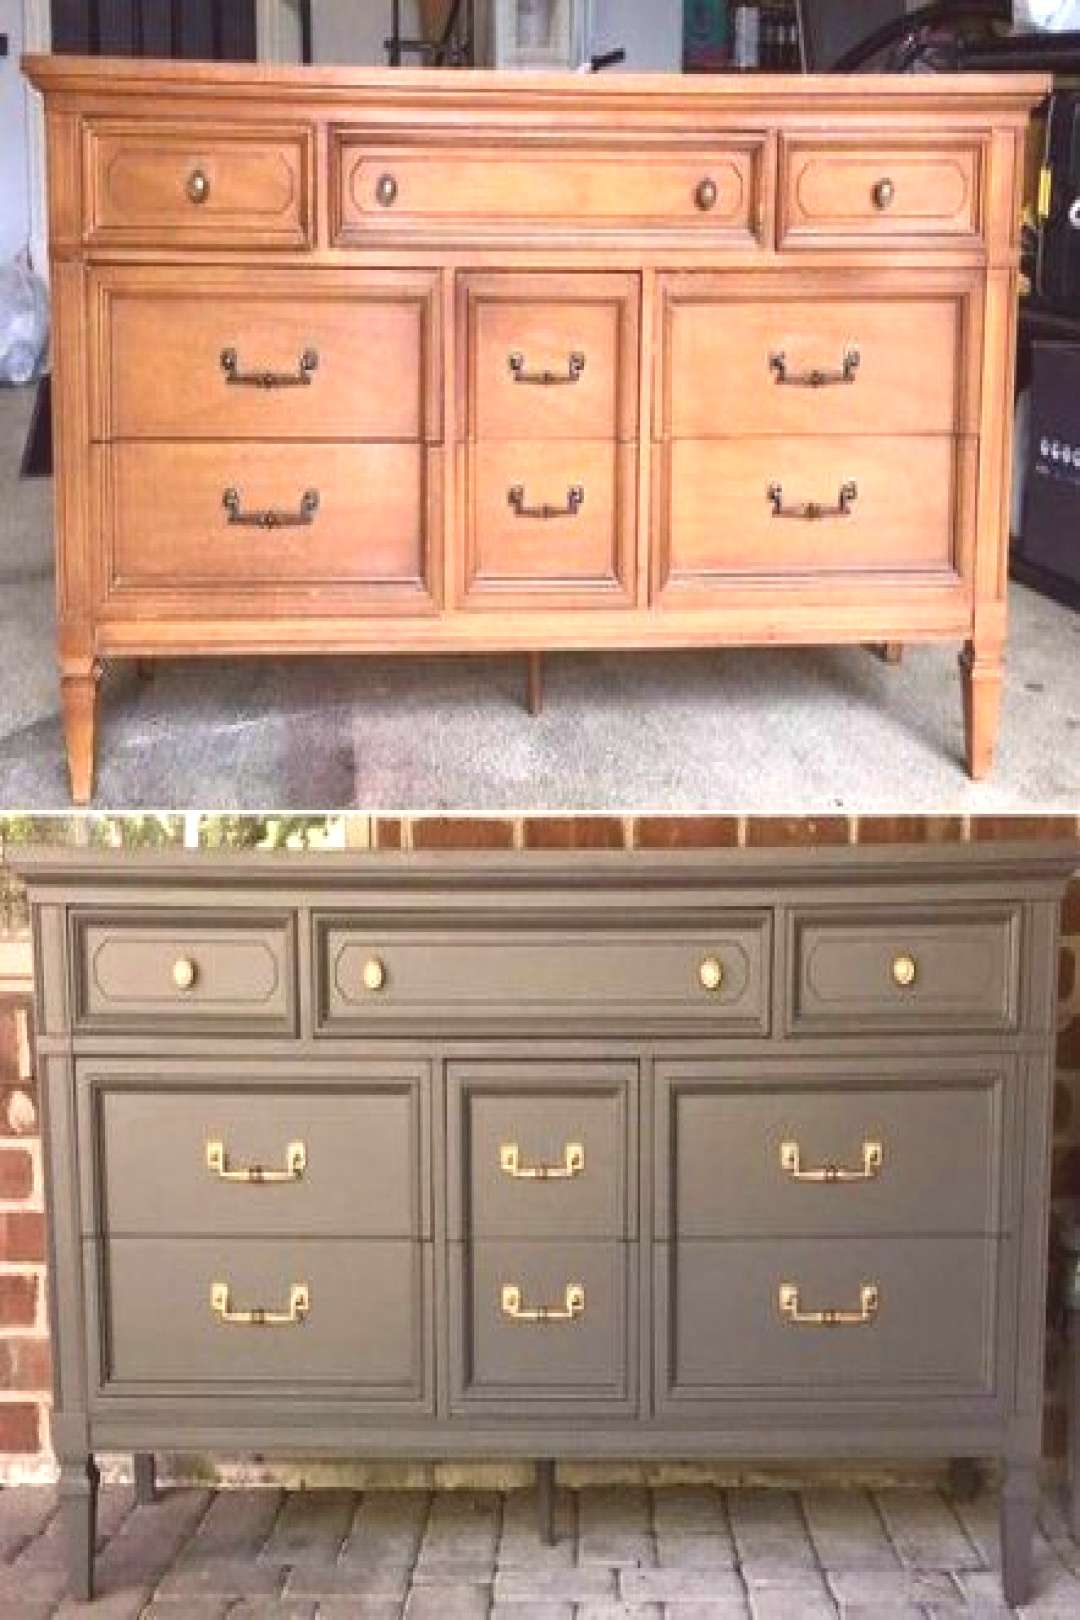 65 Ideas for painted furniture before and after dressers benjamin moore 65 Ideas for painted furnit